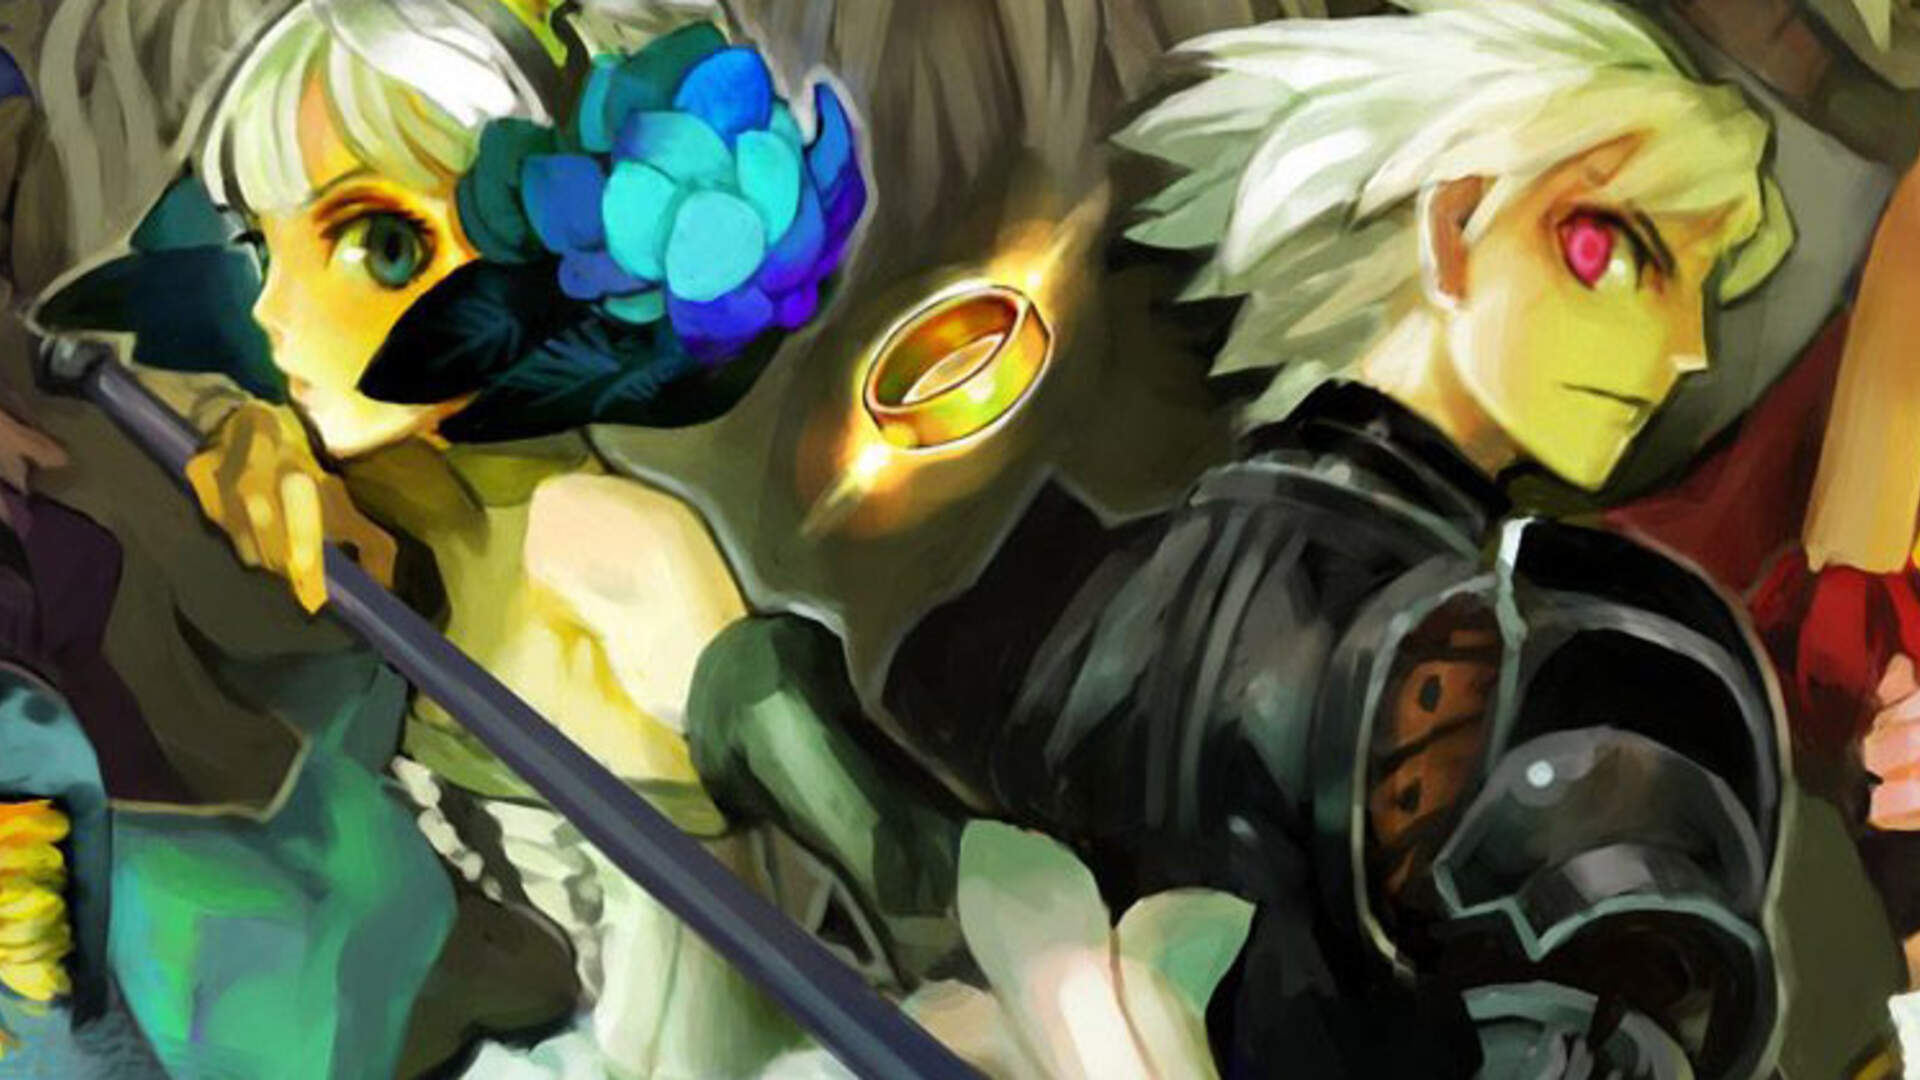 Odin Sphere Leifthrasir: A Good Game Aims for Greatness